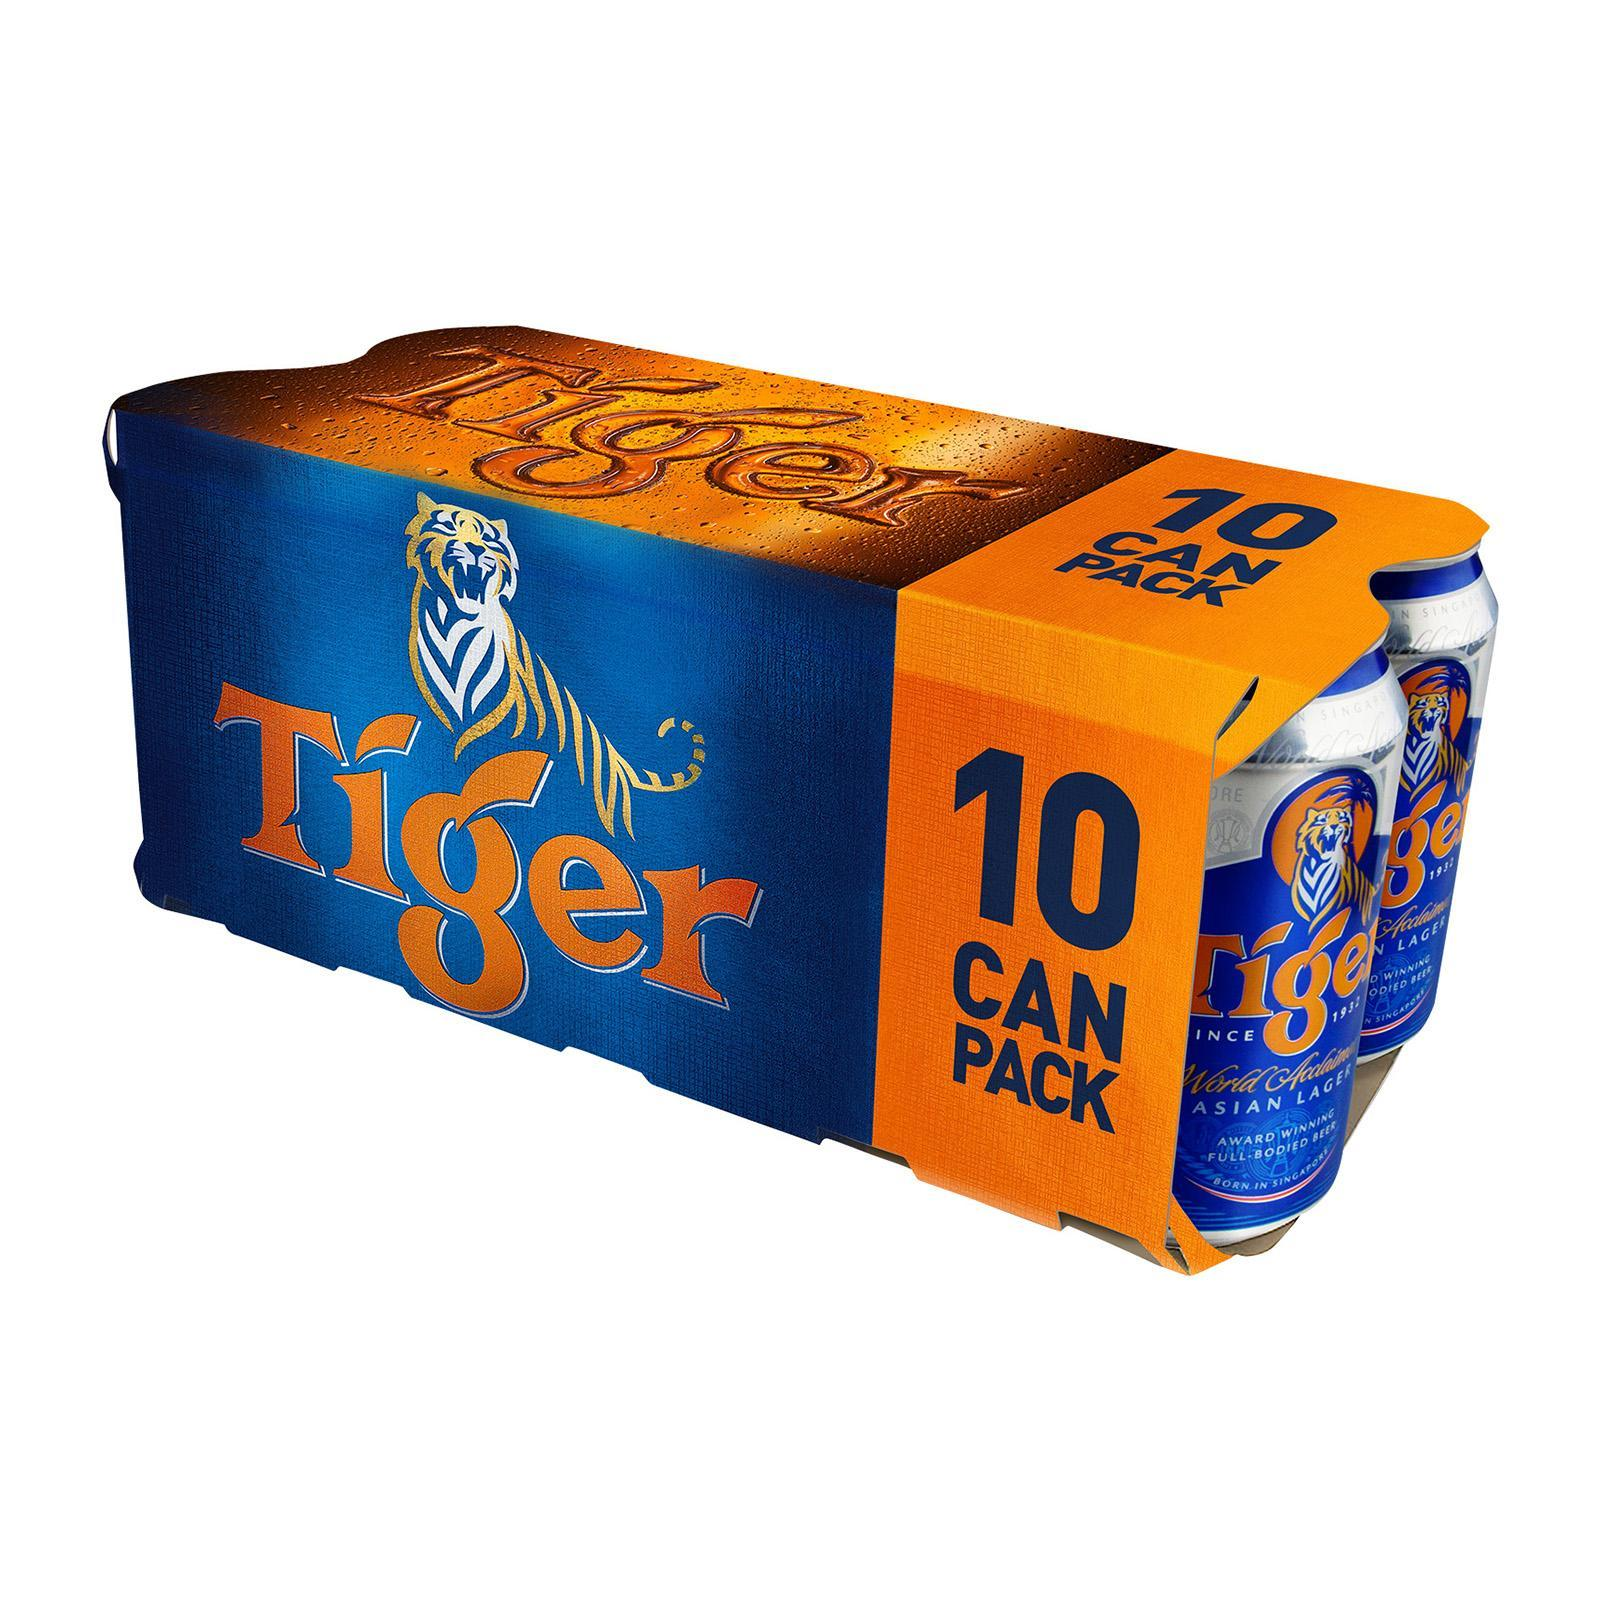 Tiger Lager Beer 10 X 330ml By Redmart.